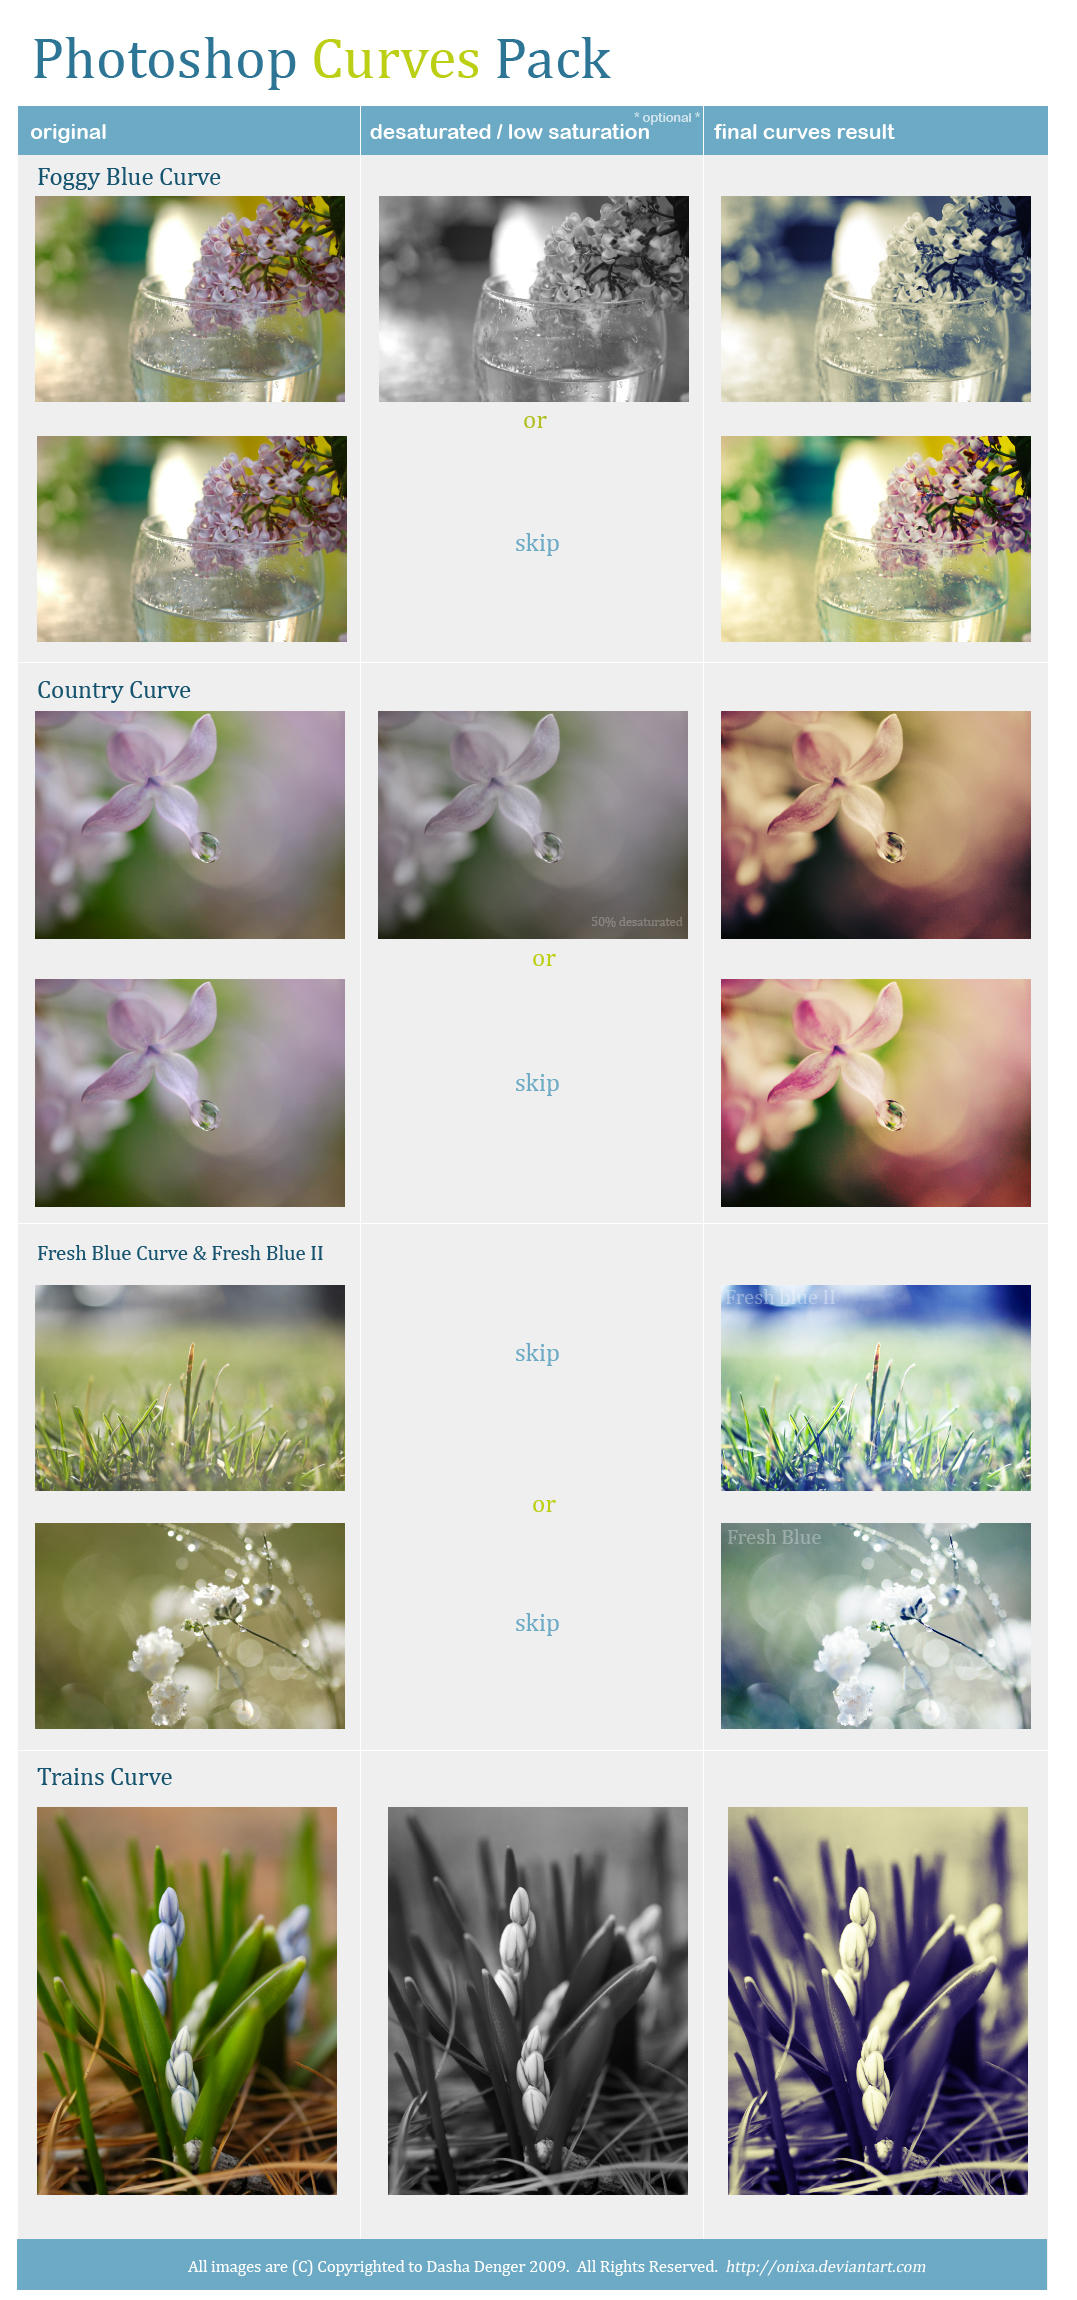 Photoshop Curves Pack by onixa